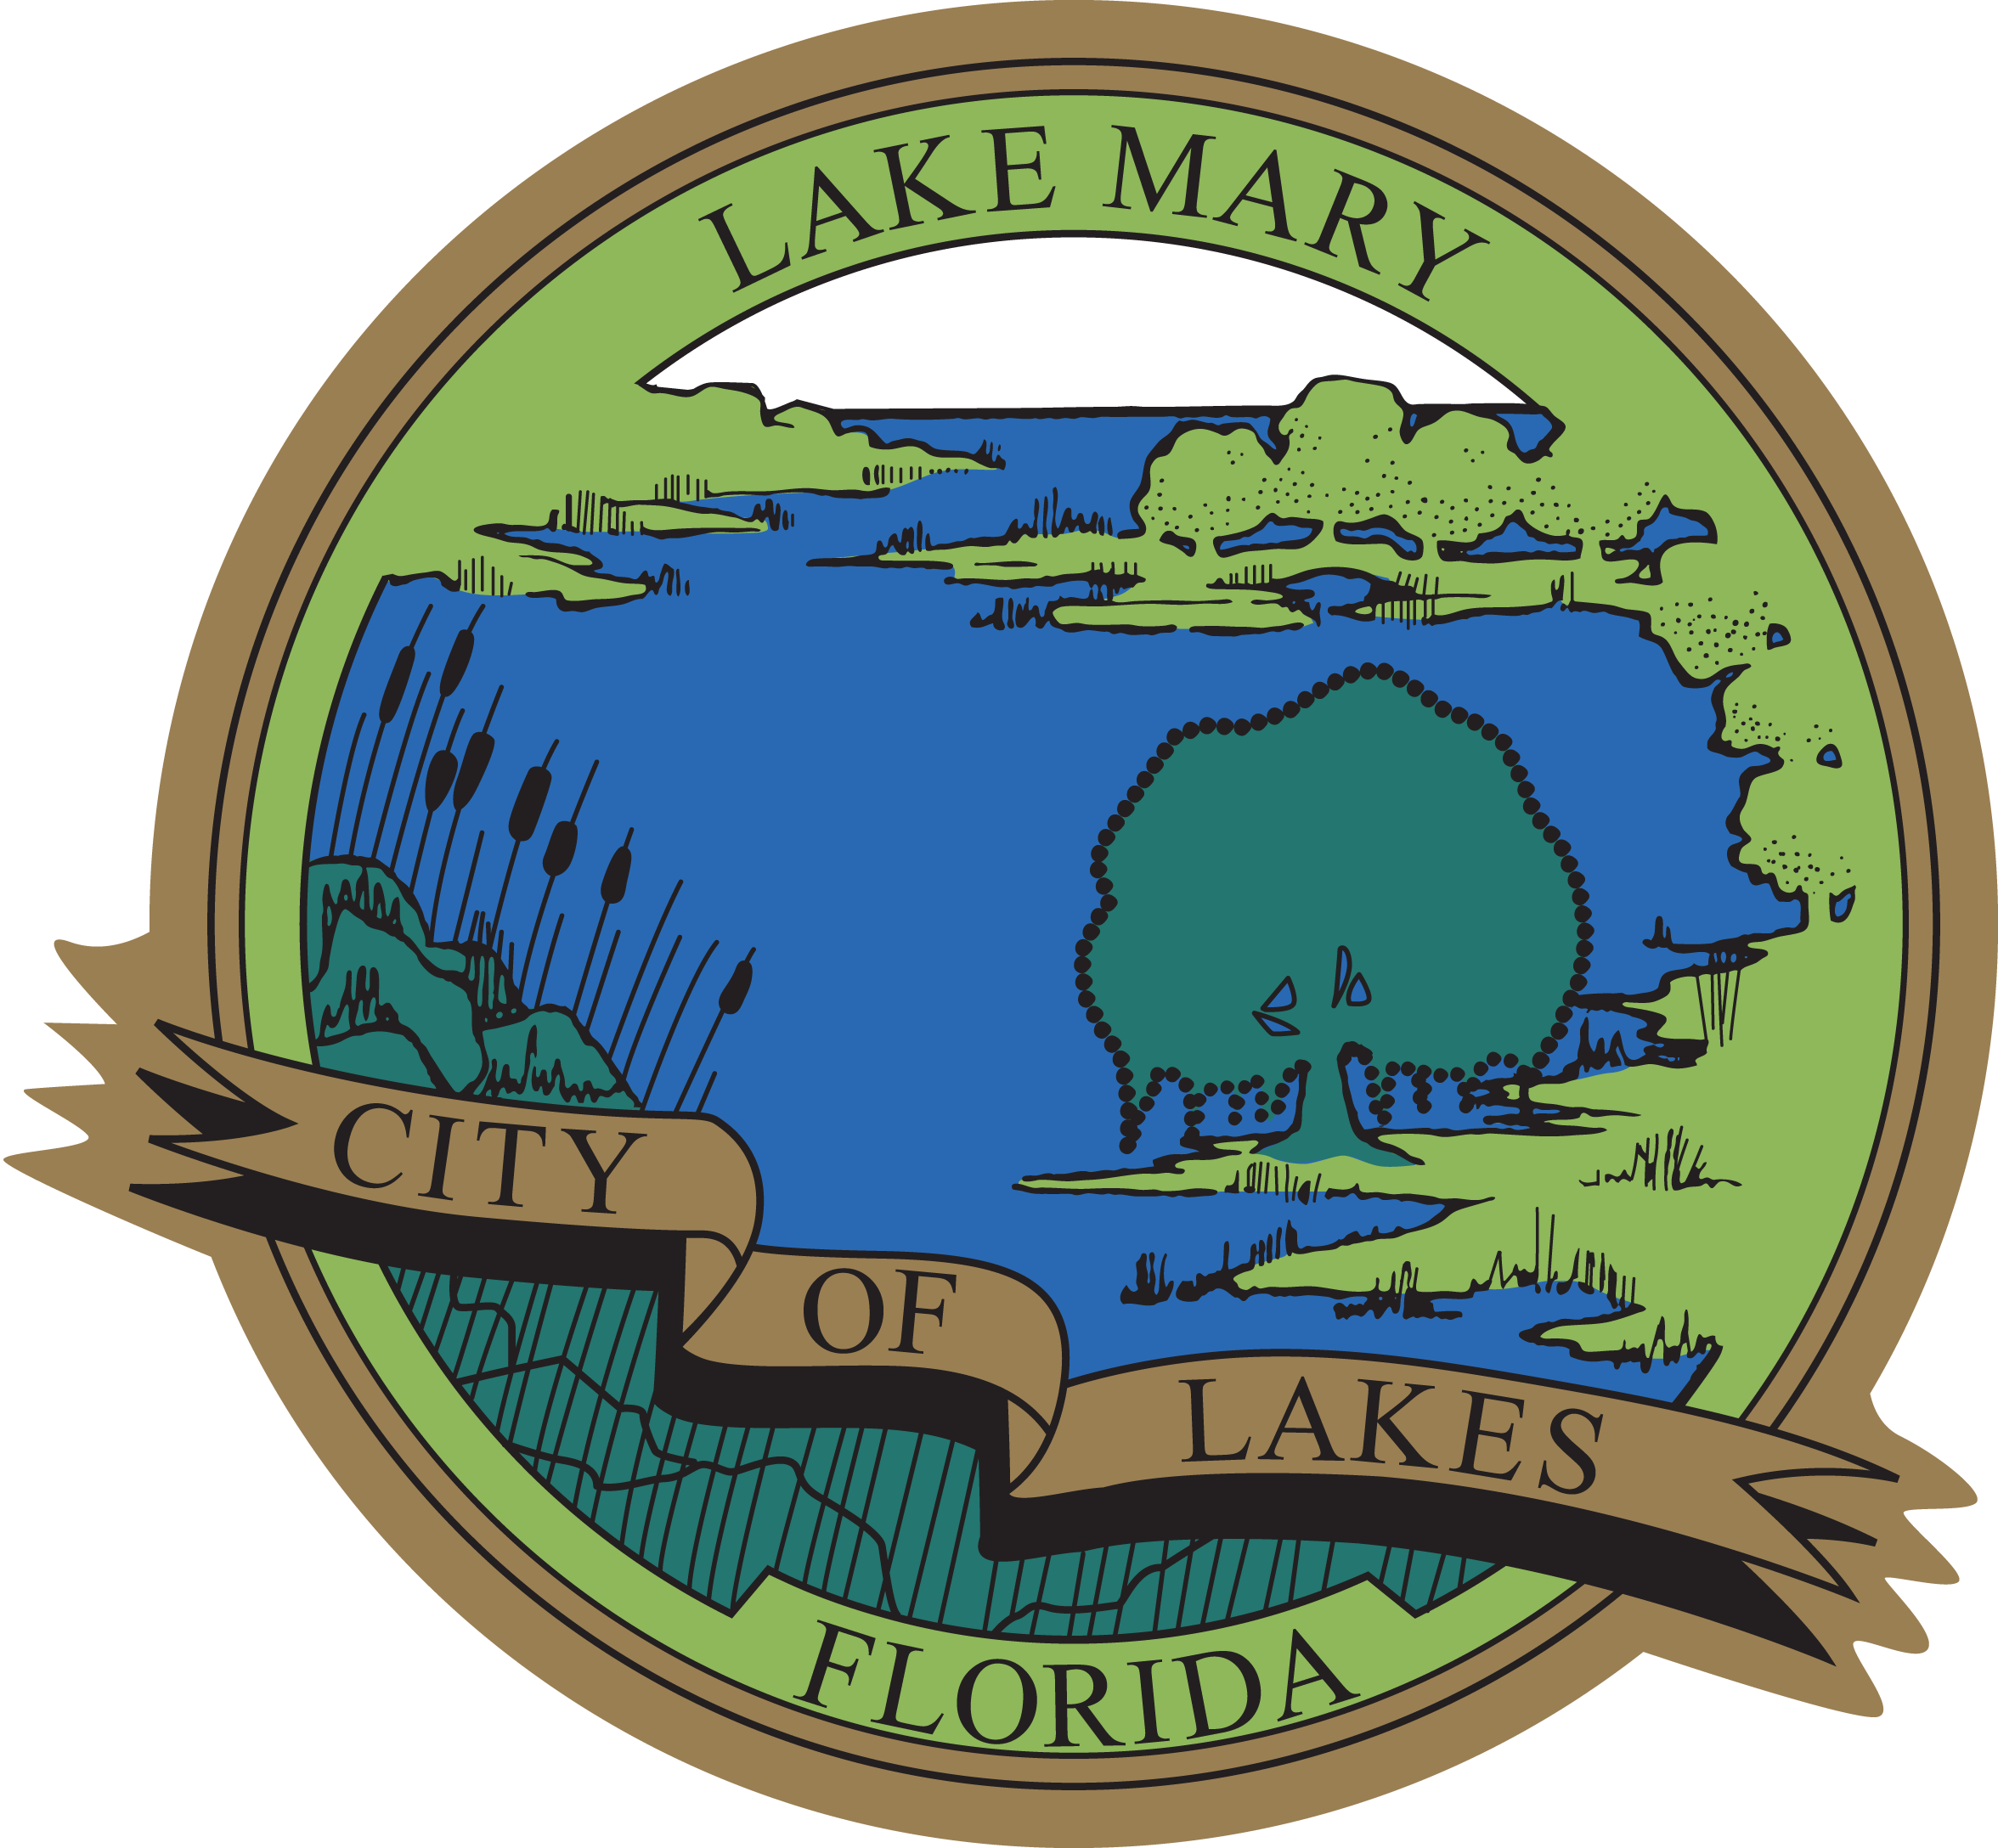 City of Lake Mary Economic Development